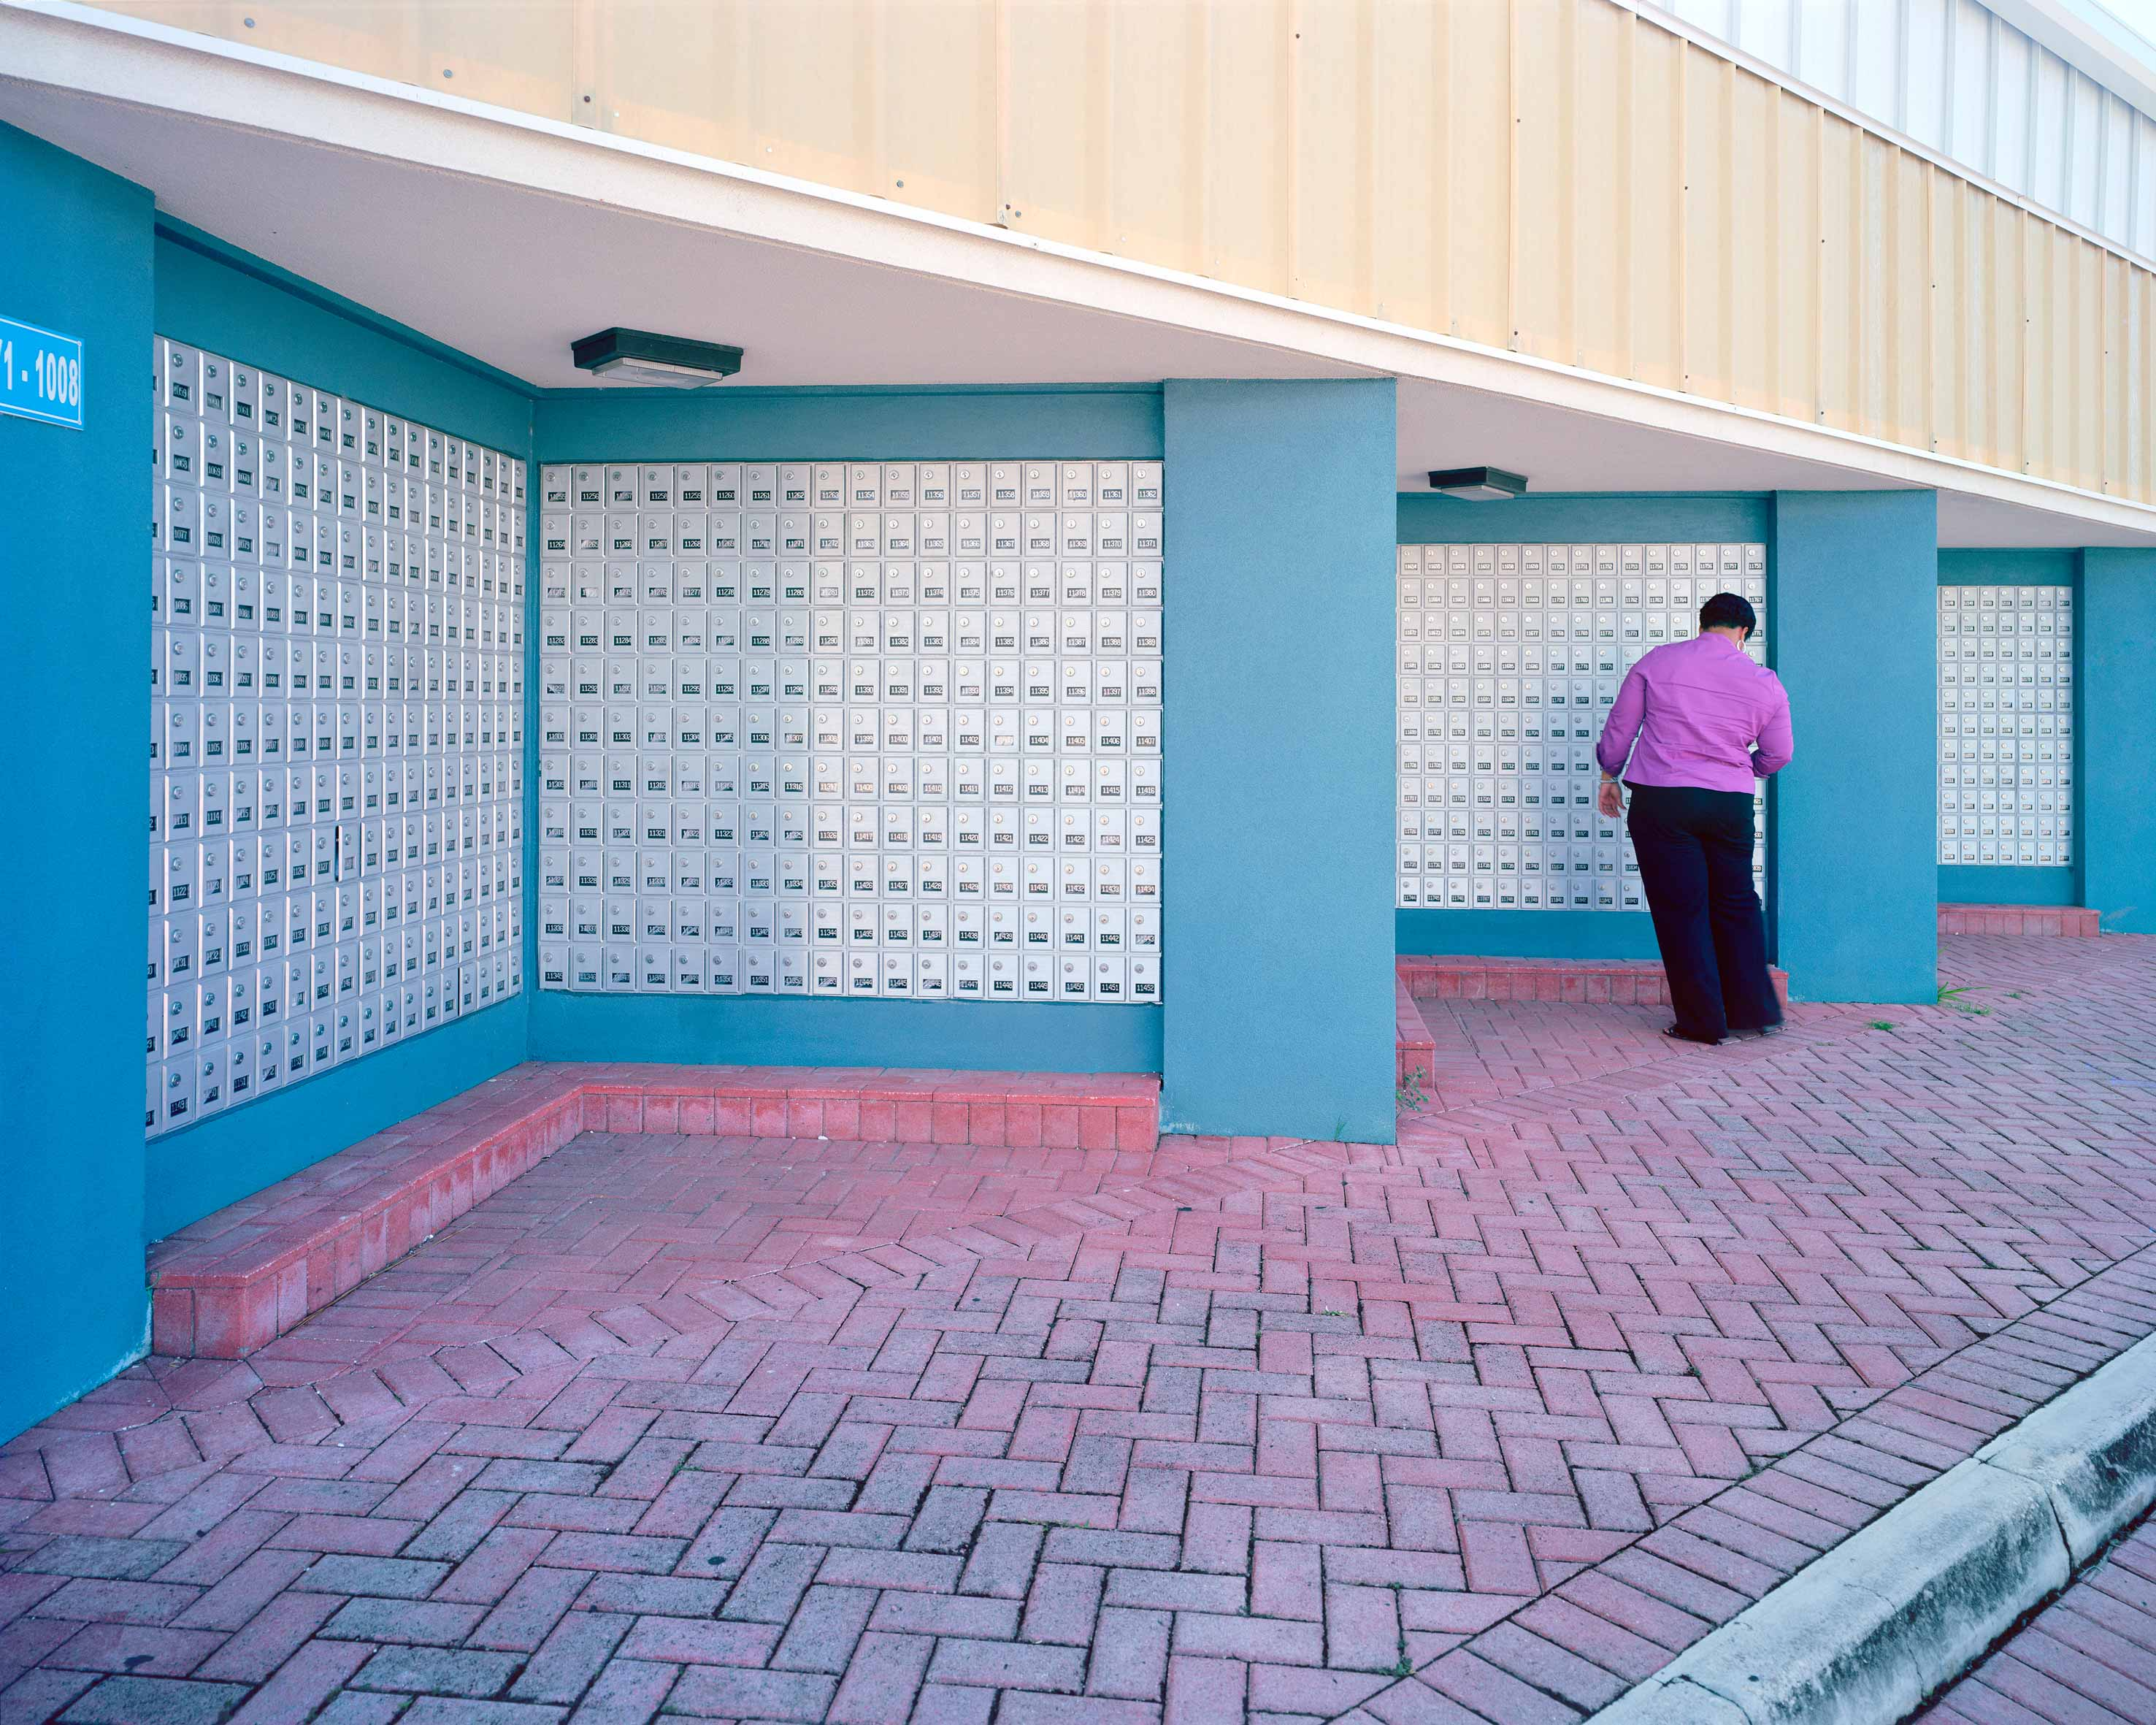 The Cayman Islands has twice as many companies based there as there are citizens. Many companies have a post office box but no office.